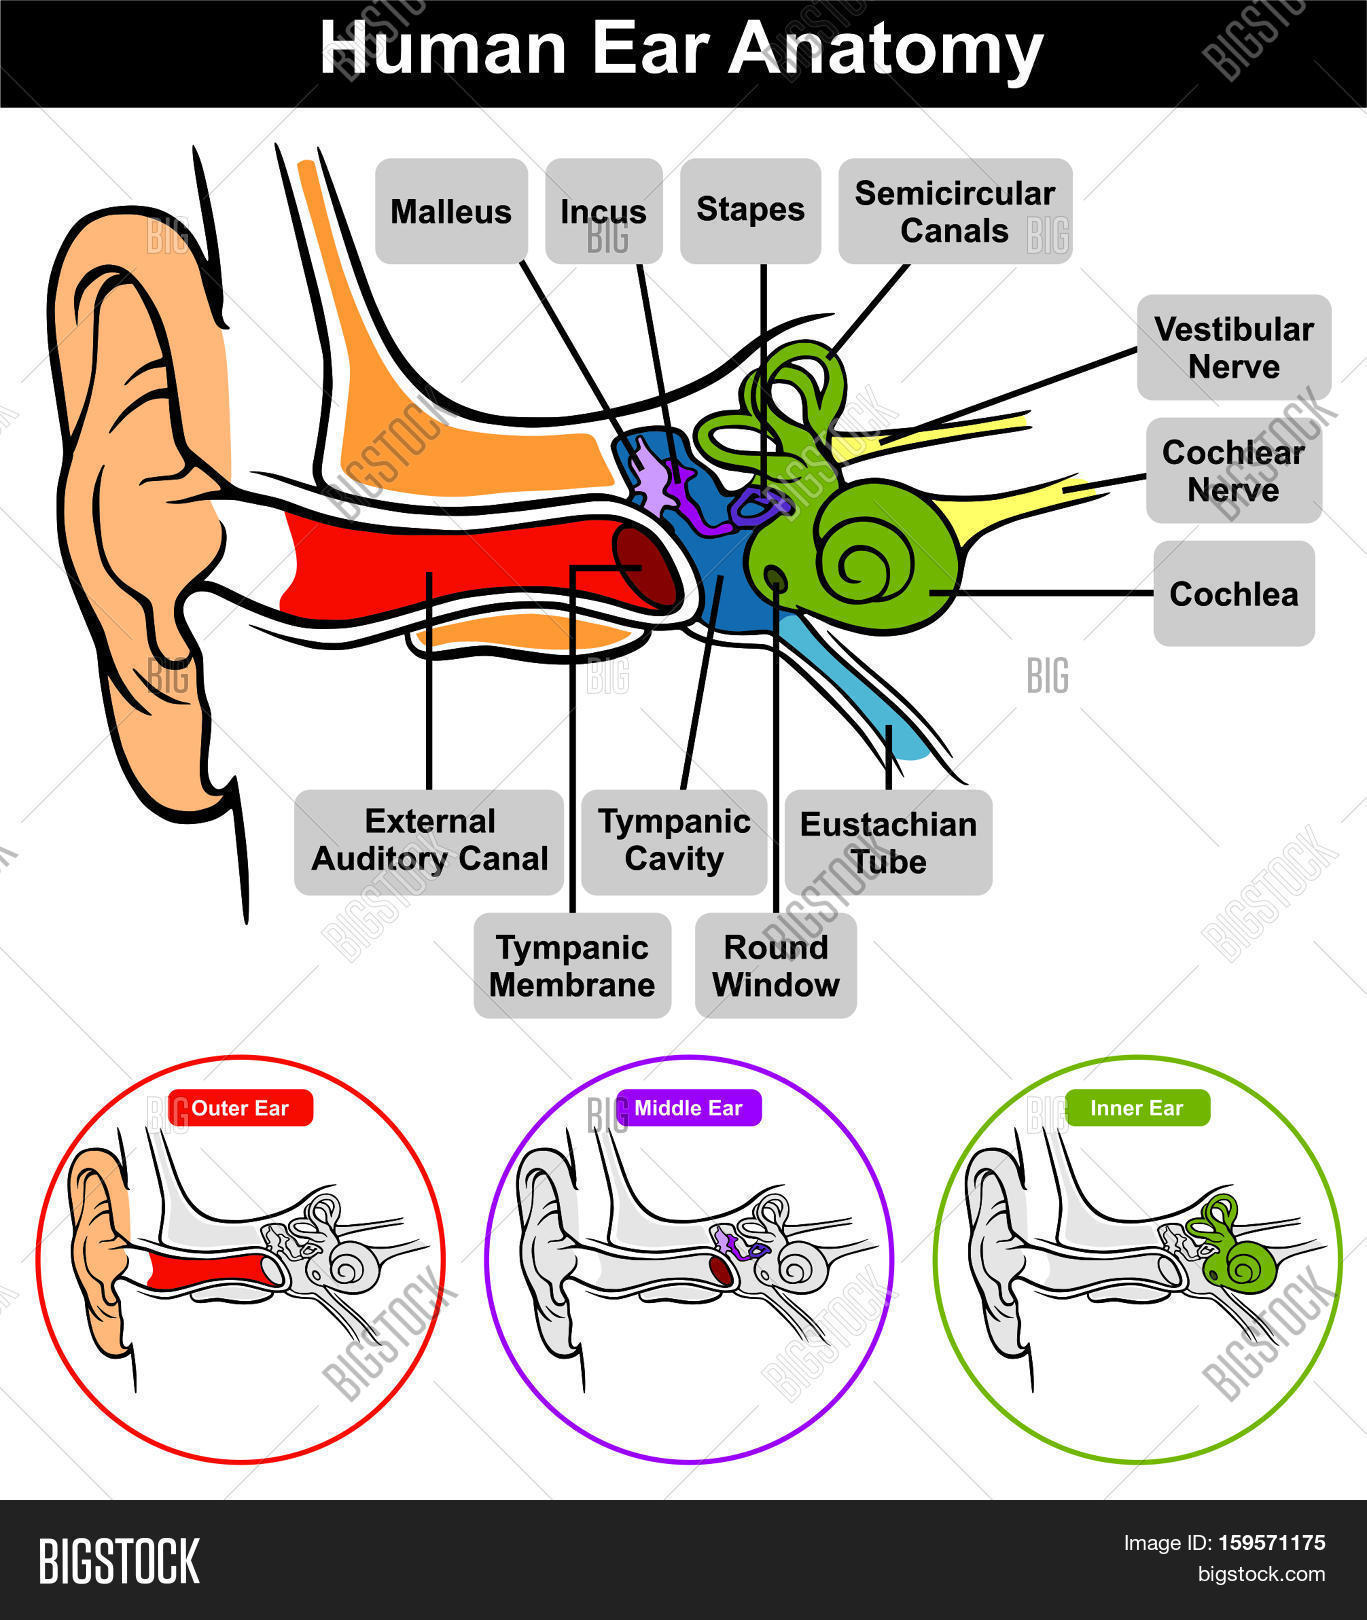 Human Ear Anatomy Image & Photo (Free Trial) | Bigstock